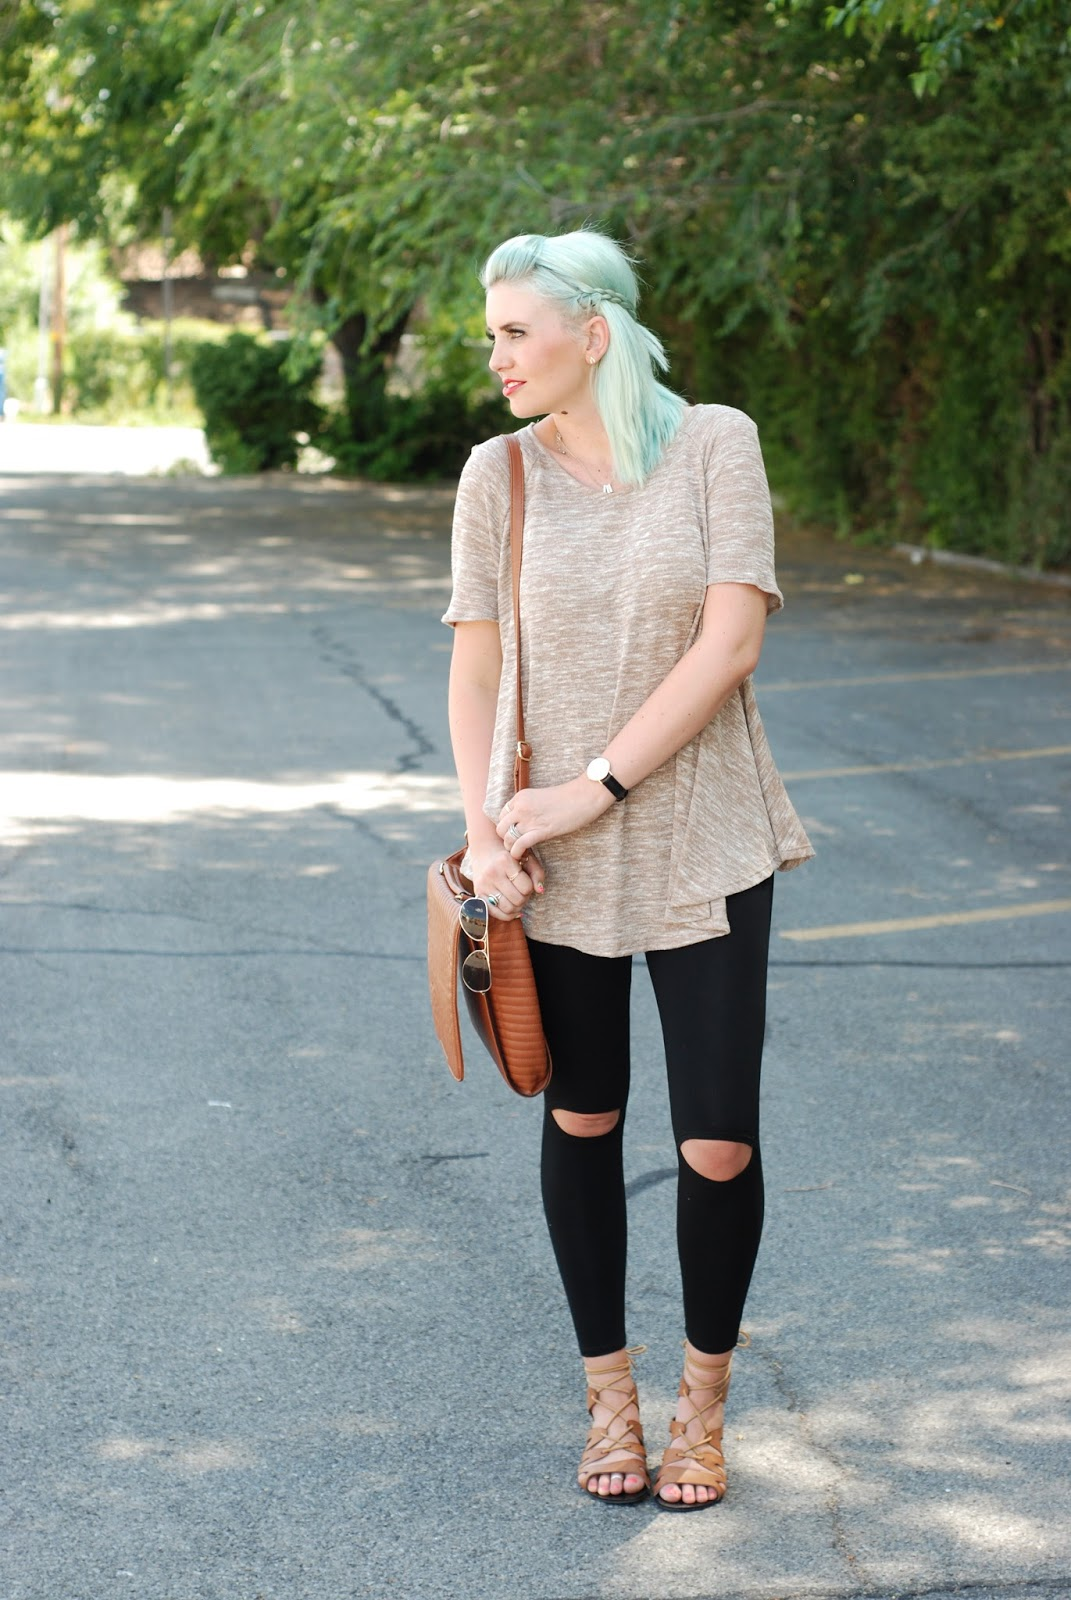 Sidney Clark Designs, Ripped Knee Leggings, Fall Outfit